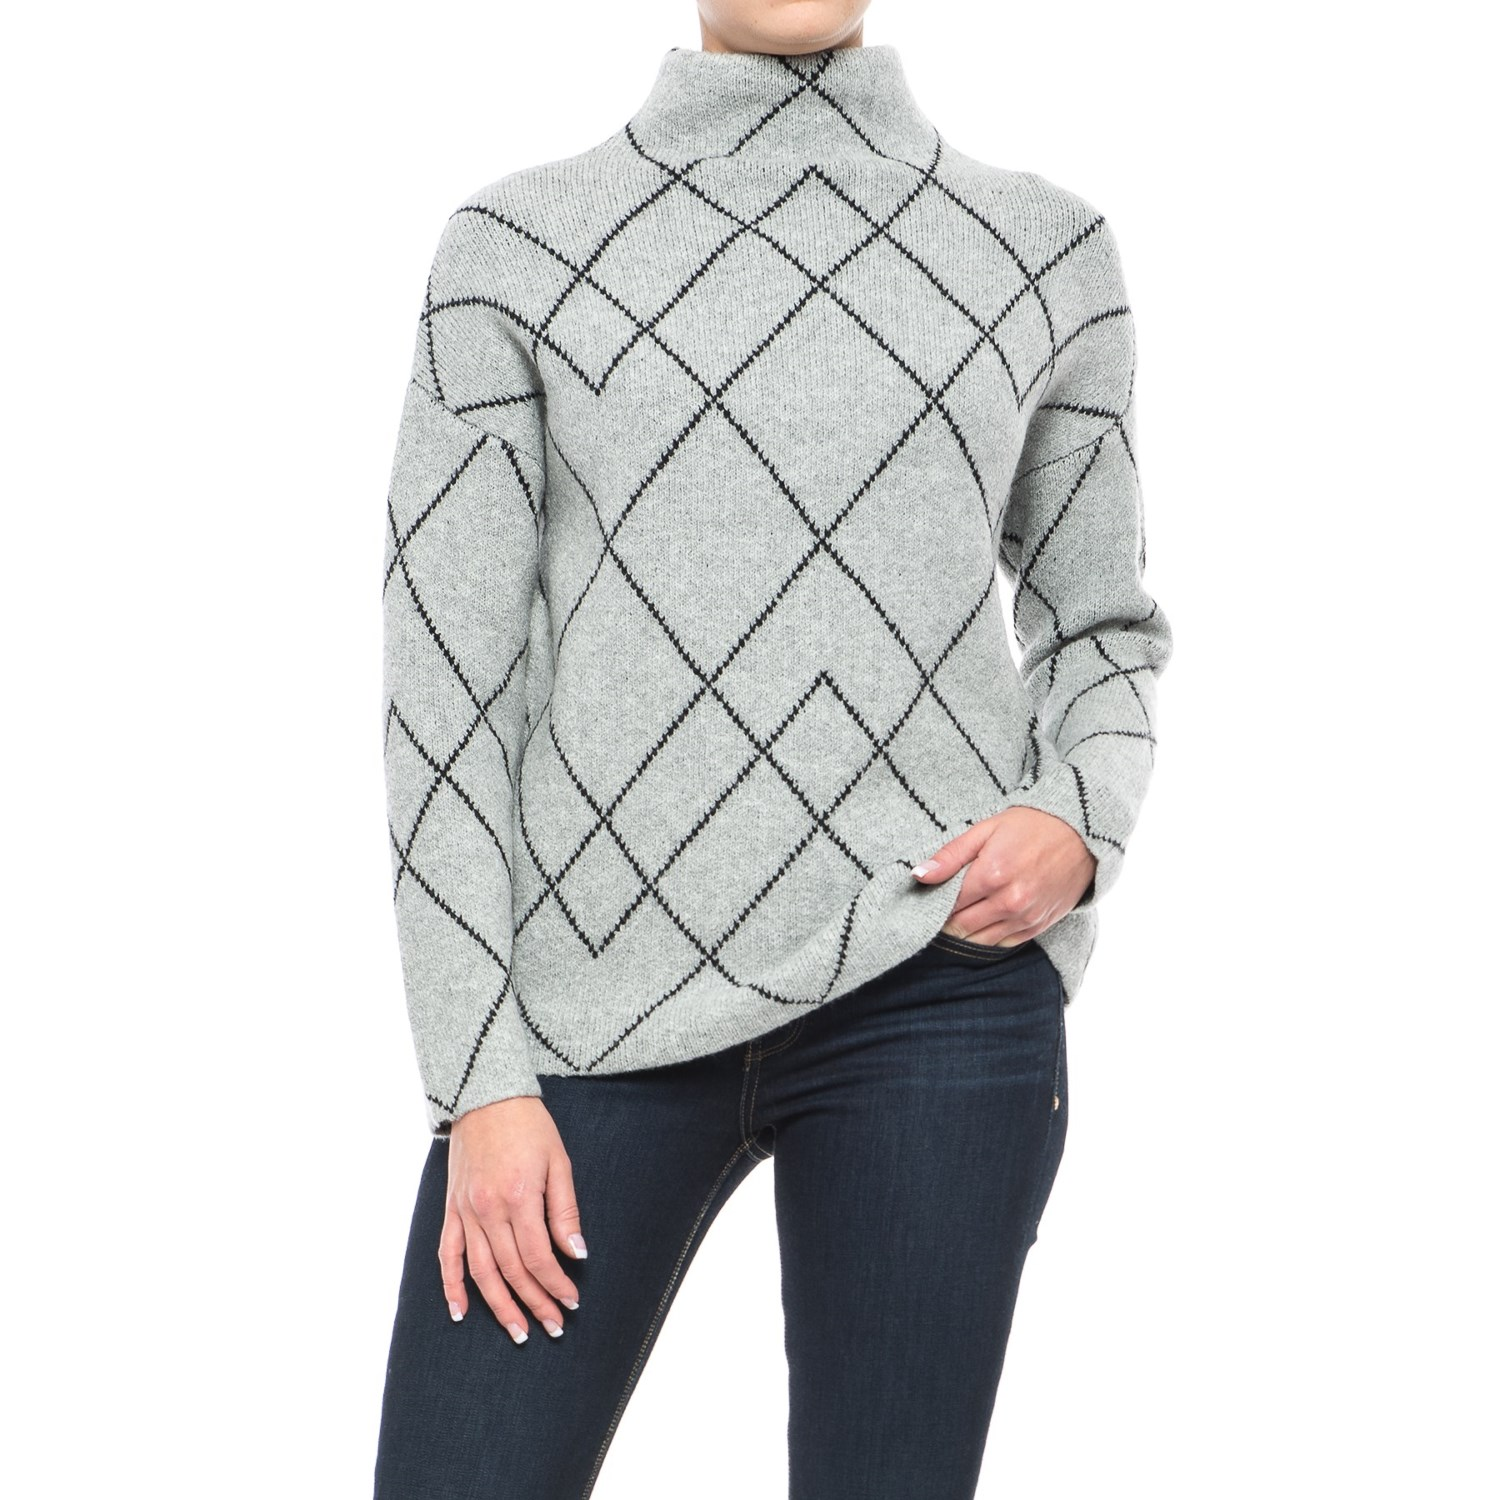 Artisan NY Recovery Yarn Jacquard Sweater (For Women) - Save 50%